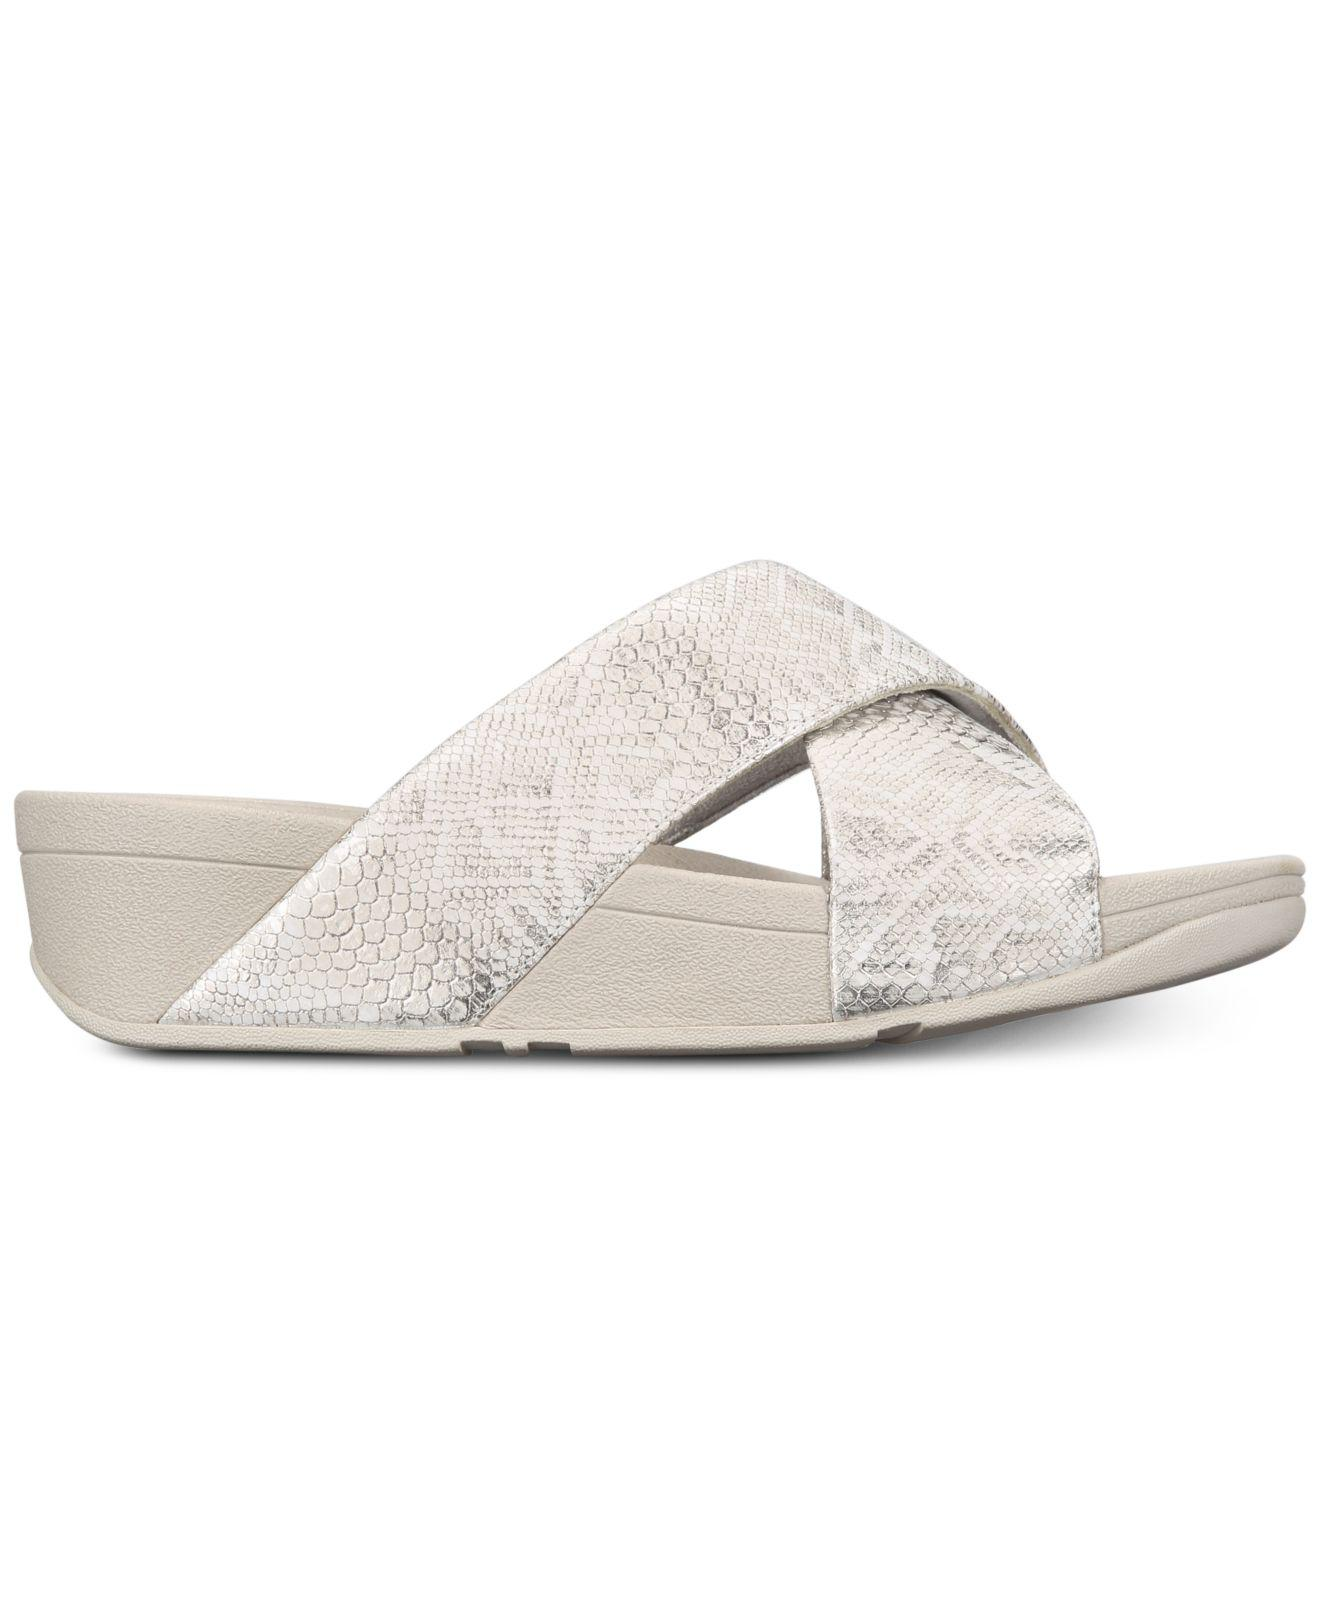 49ea559bc Lyst - Fitflop Lulu Slide Sandals in White